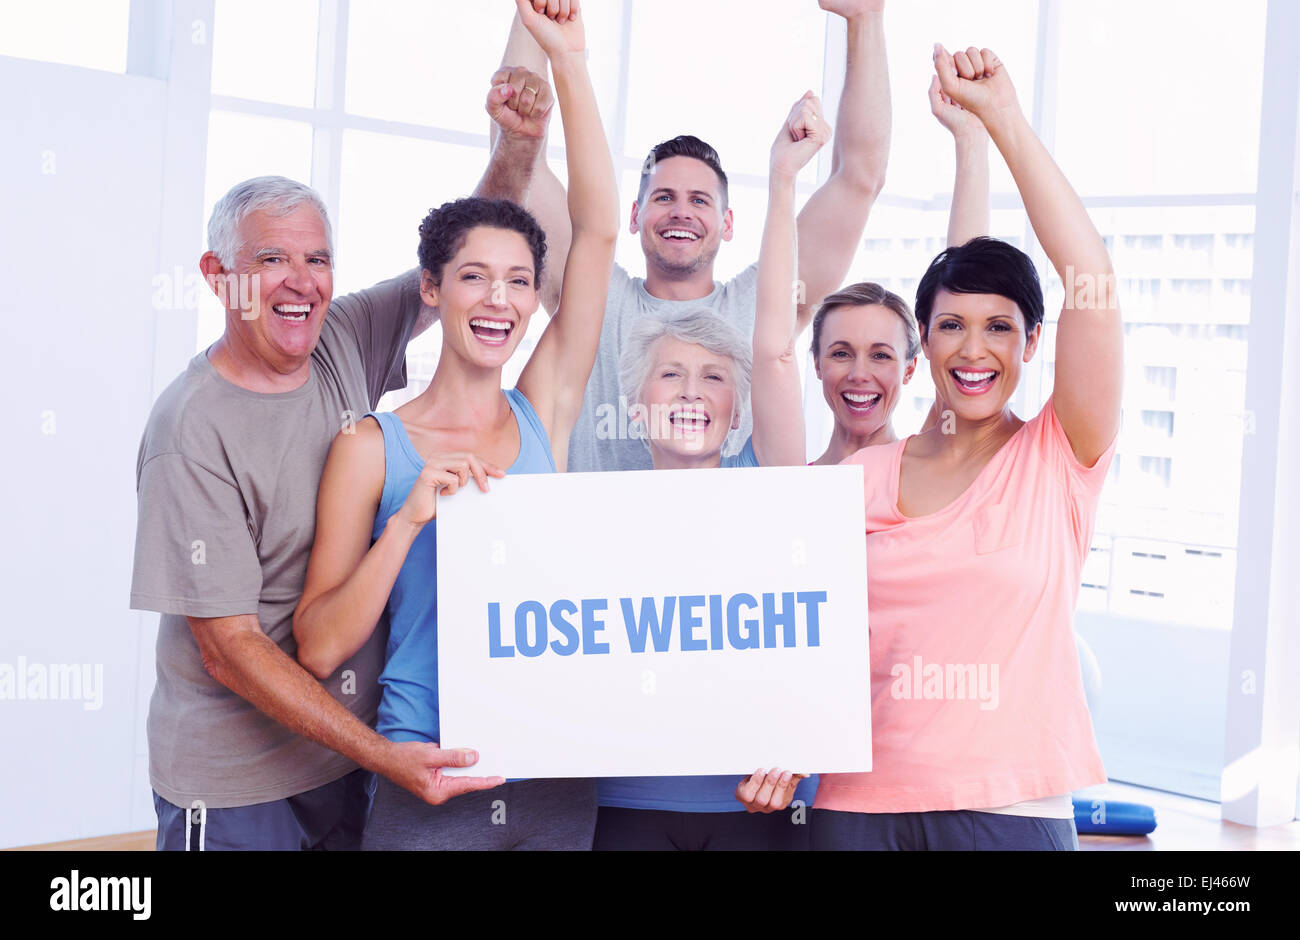 Lose weight against portrait of happy fit people holding blank board - Stock Image